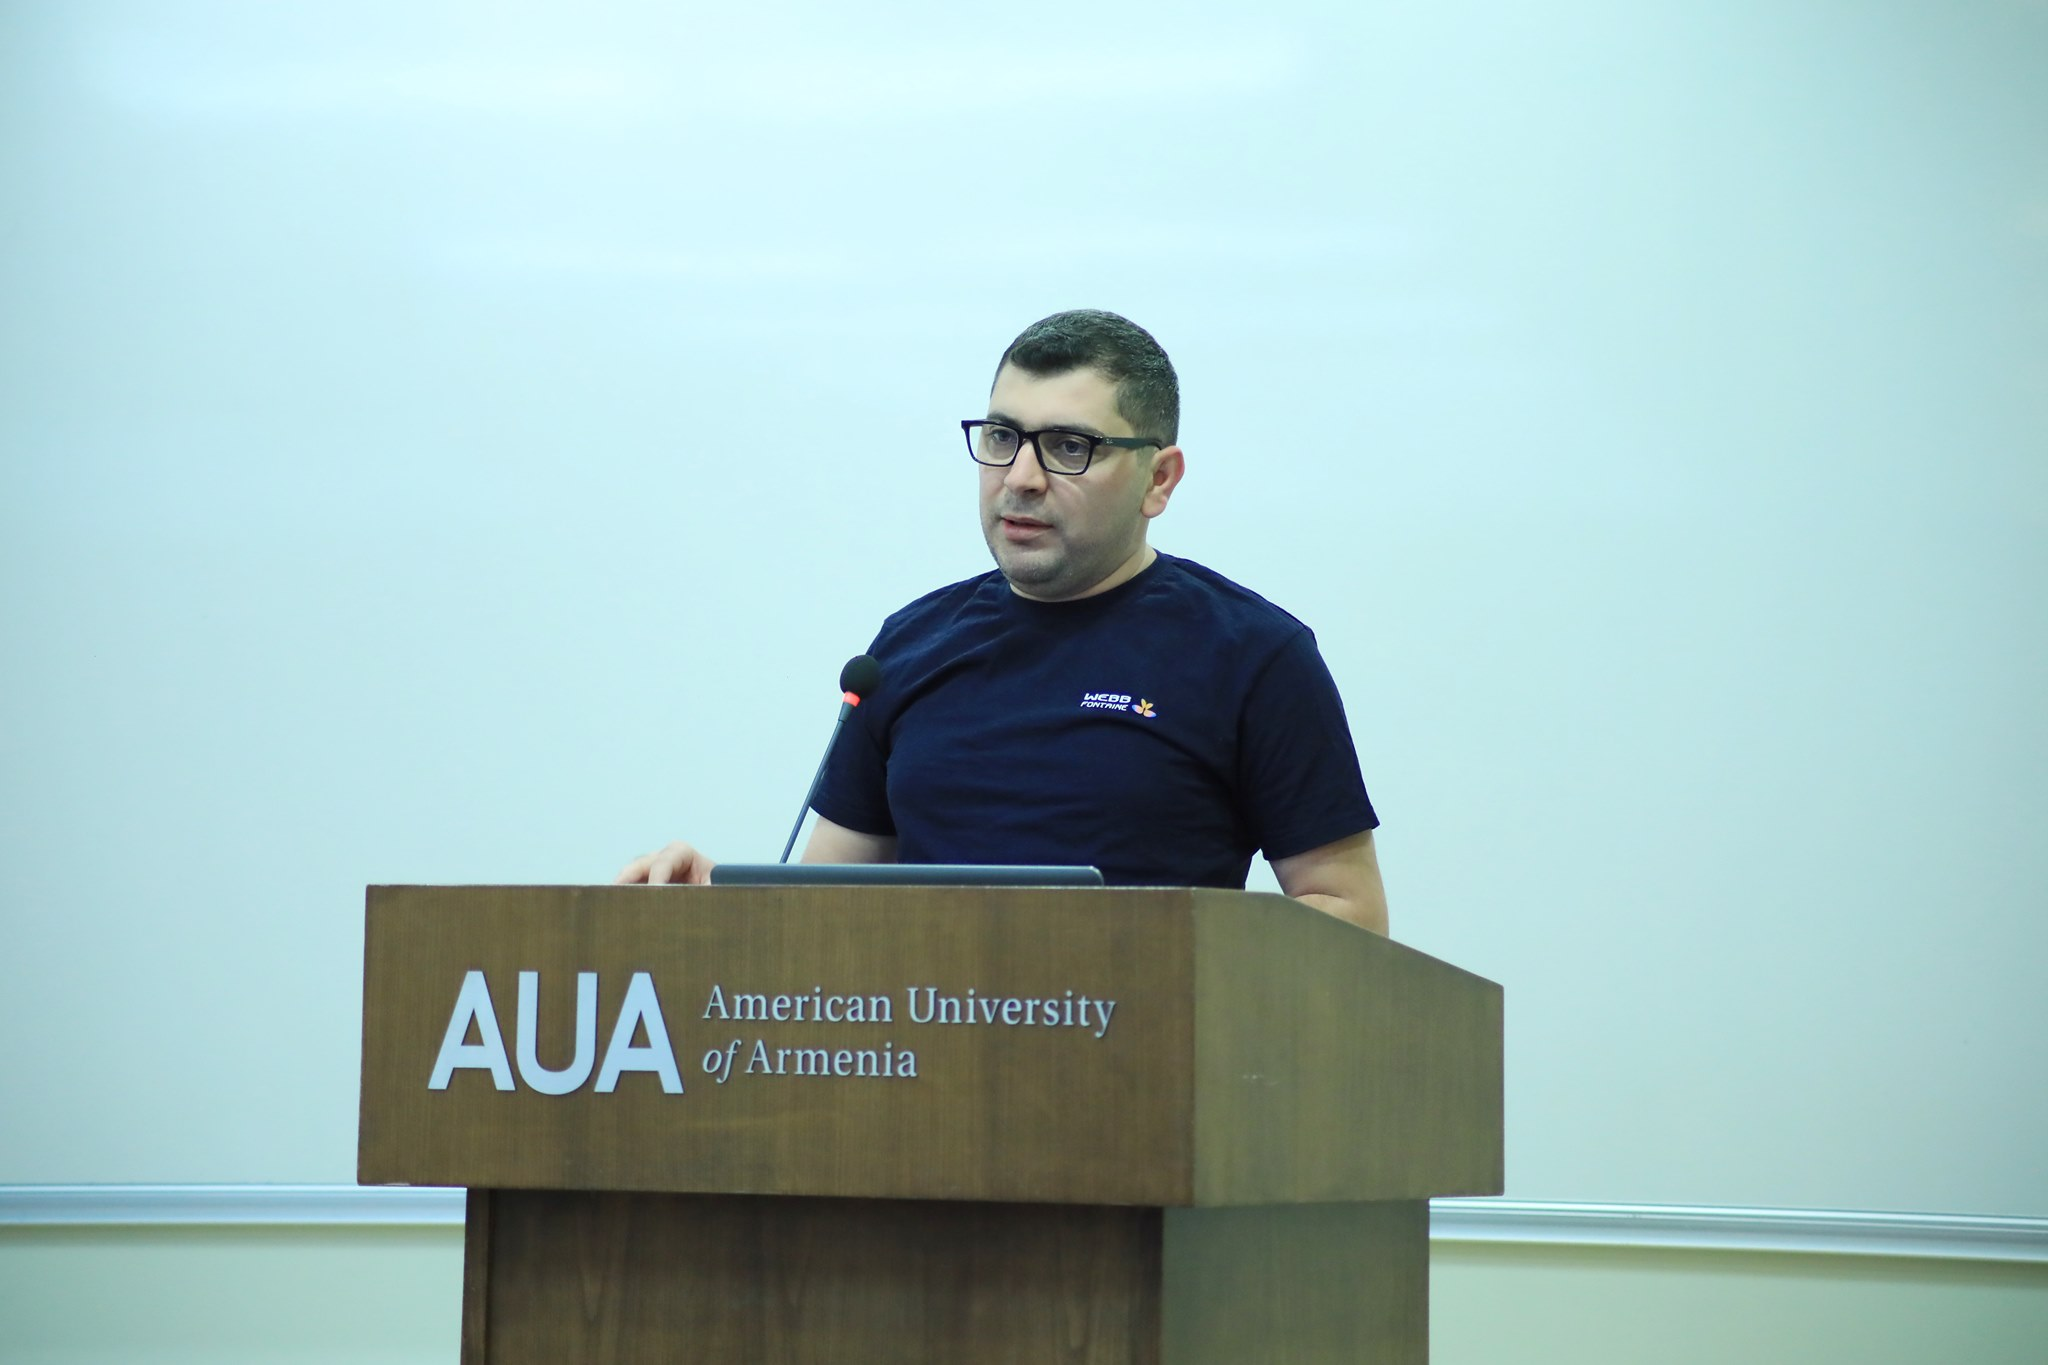 With the help of Webb Fontaine launched an unprecedented Summer School of Data Science in Armenia 1